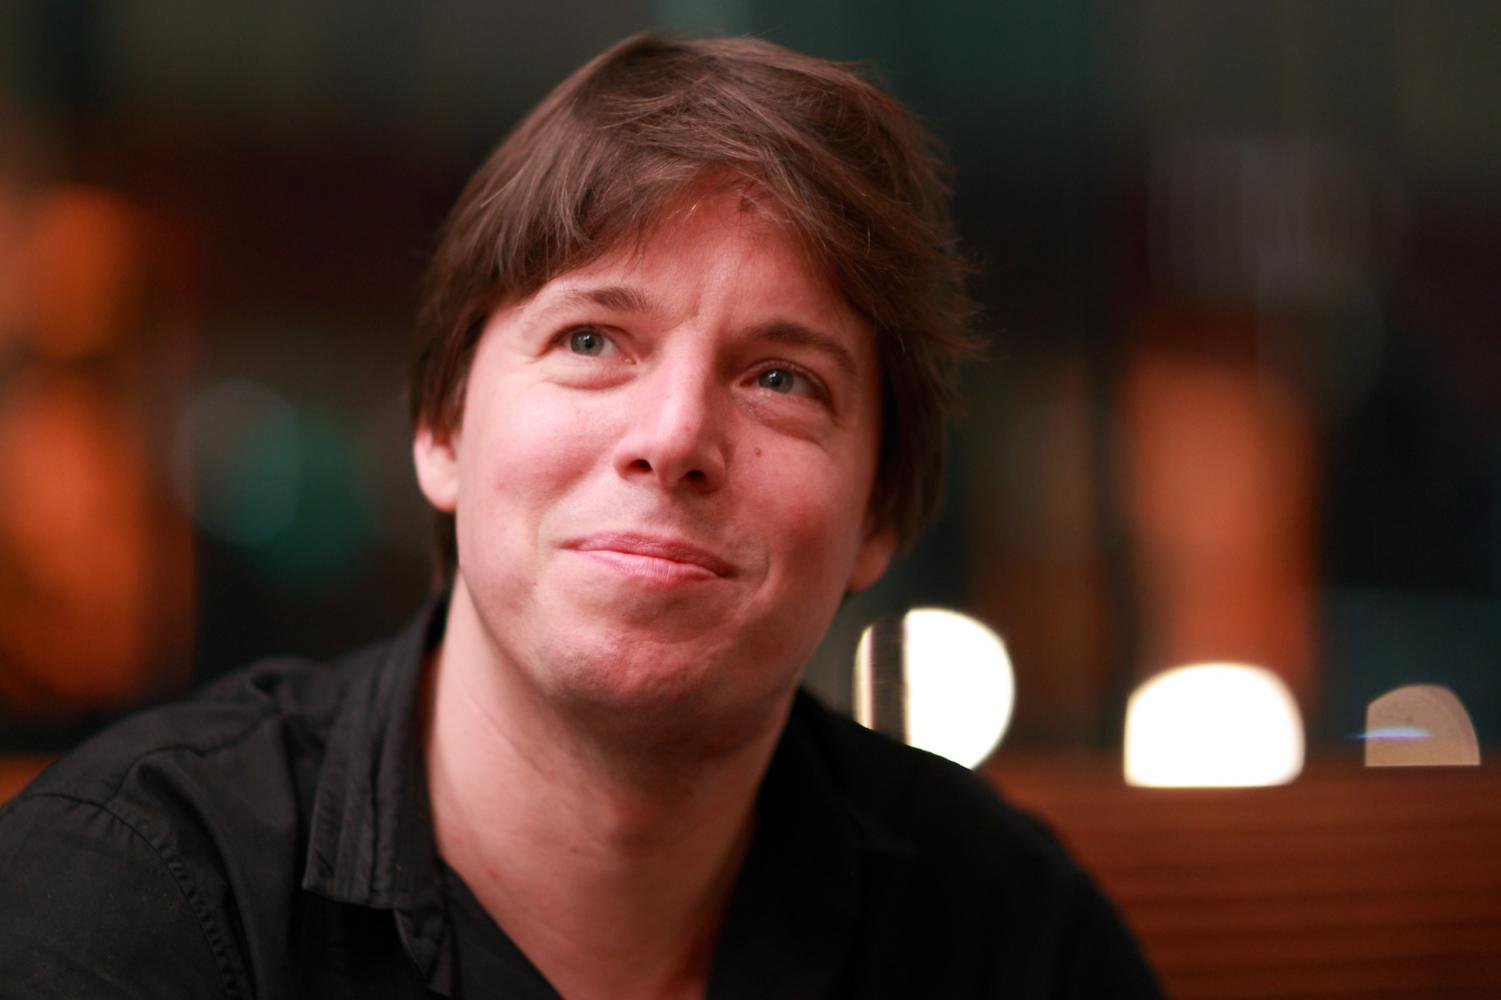 Violinist Joshua Bell after finishing a performance with the San Francisco Symphony  Orchestra